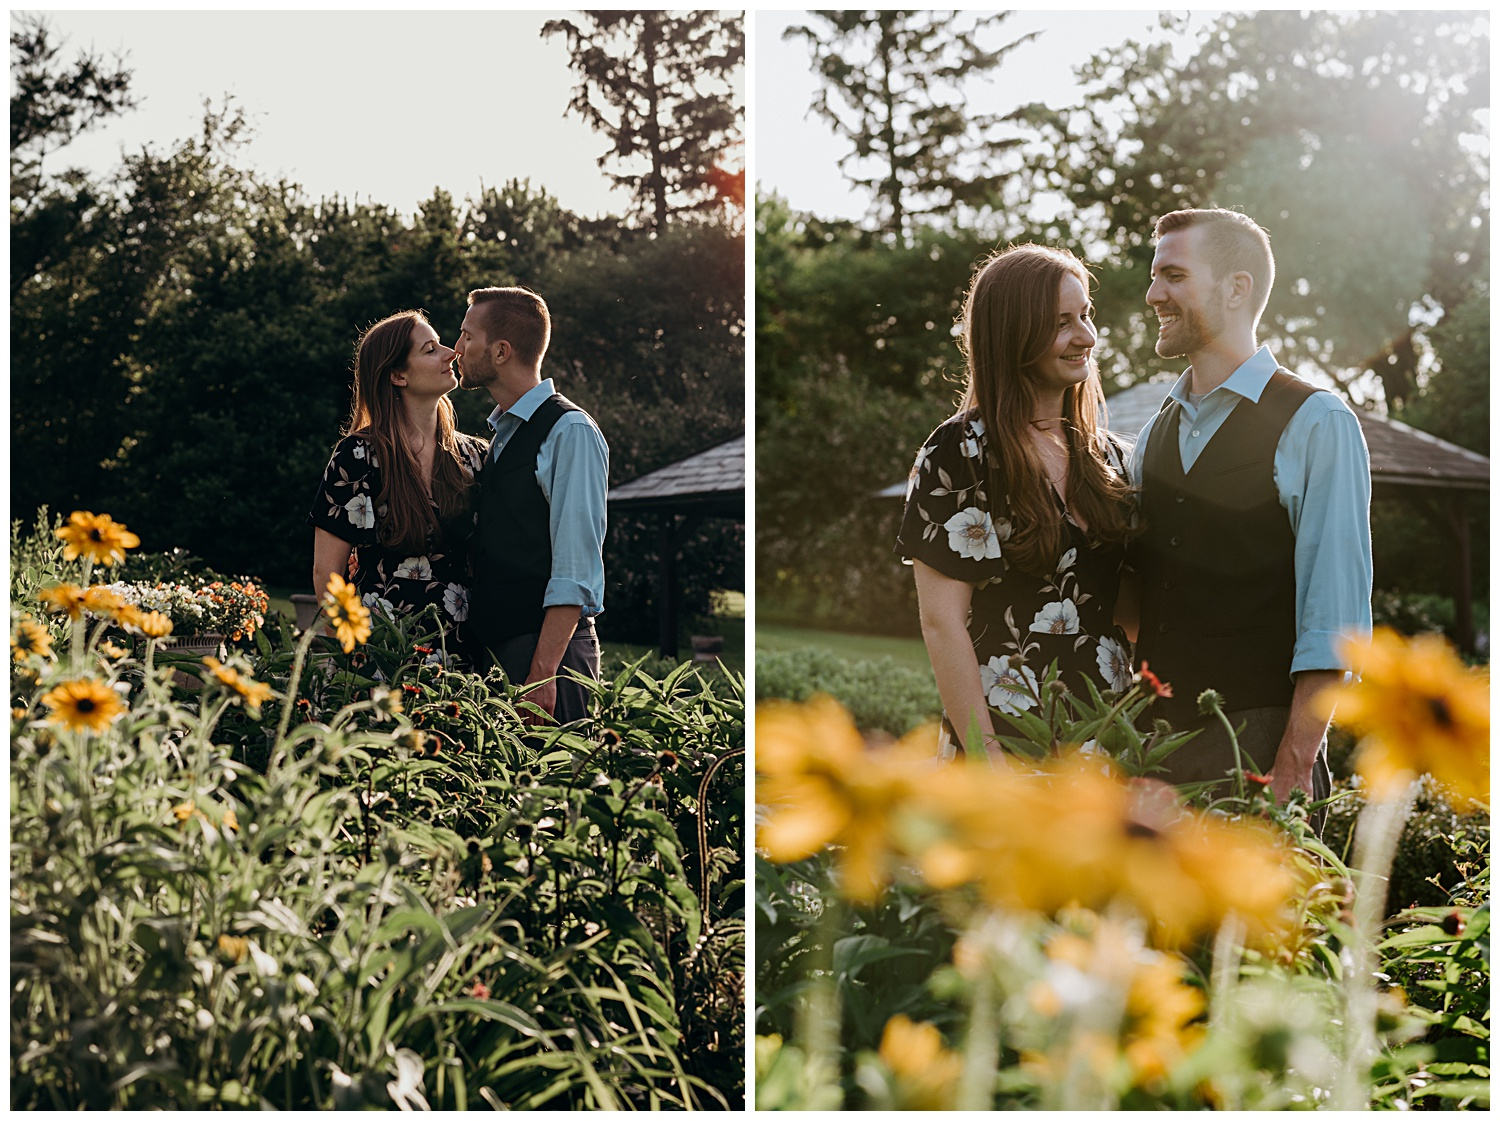 Megan-Graham-Photography-best-dc-wedding-engagement-photographer-surreybrooke-laura-eric-frederick12.jpg